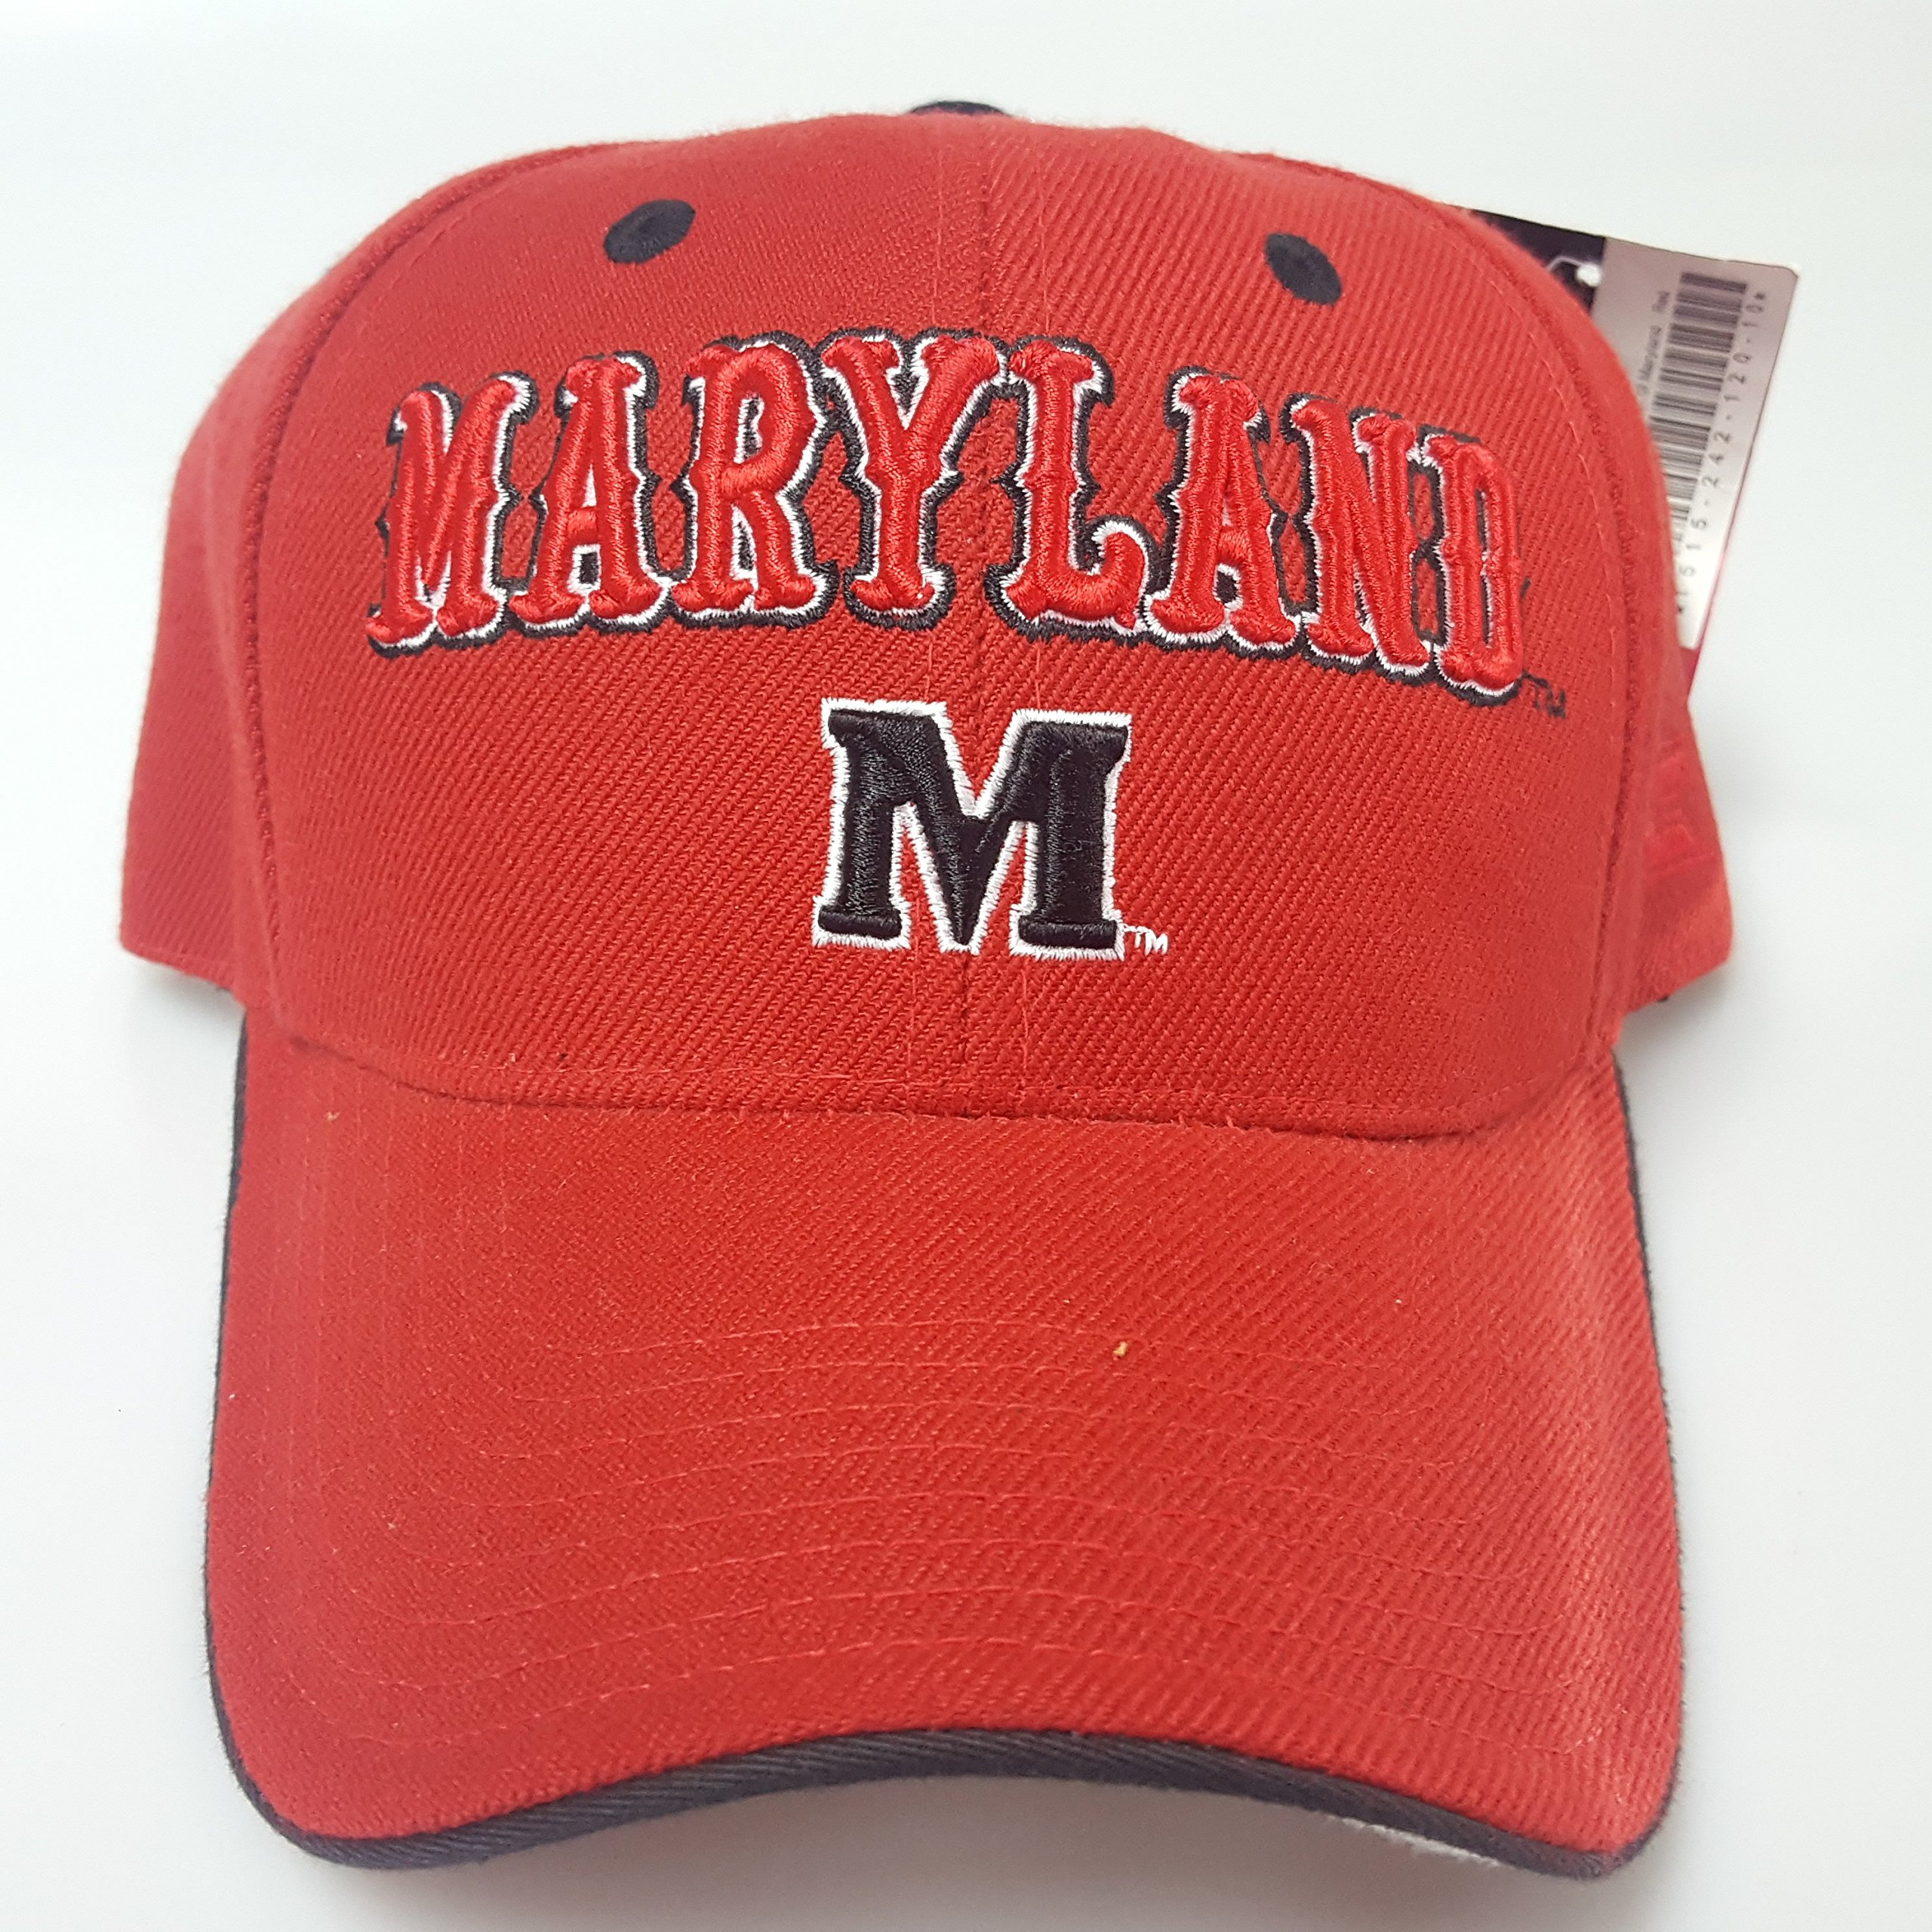 NCAA New Maryland Terps Embroidered Red Adjustable Cap